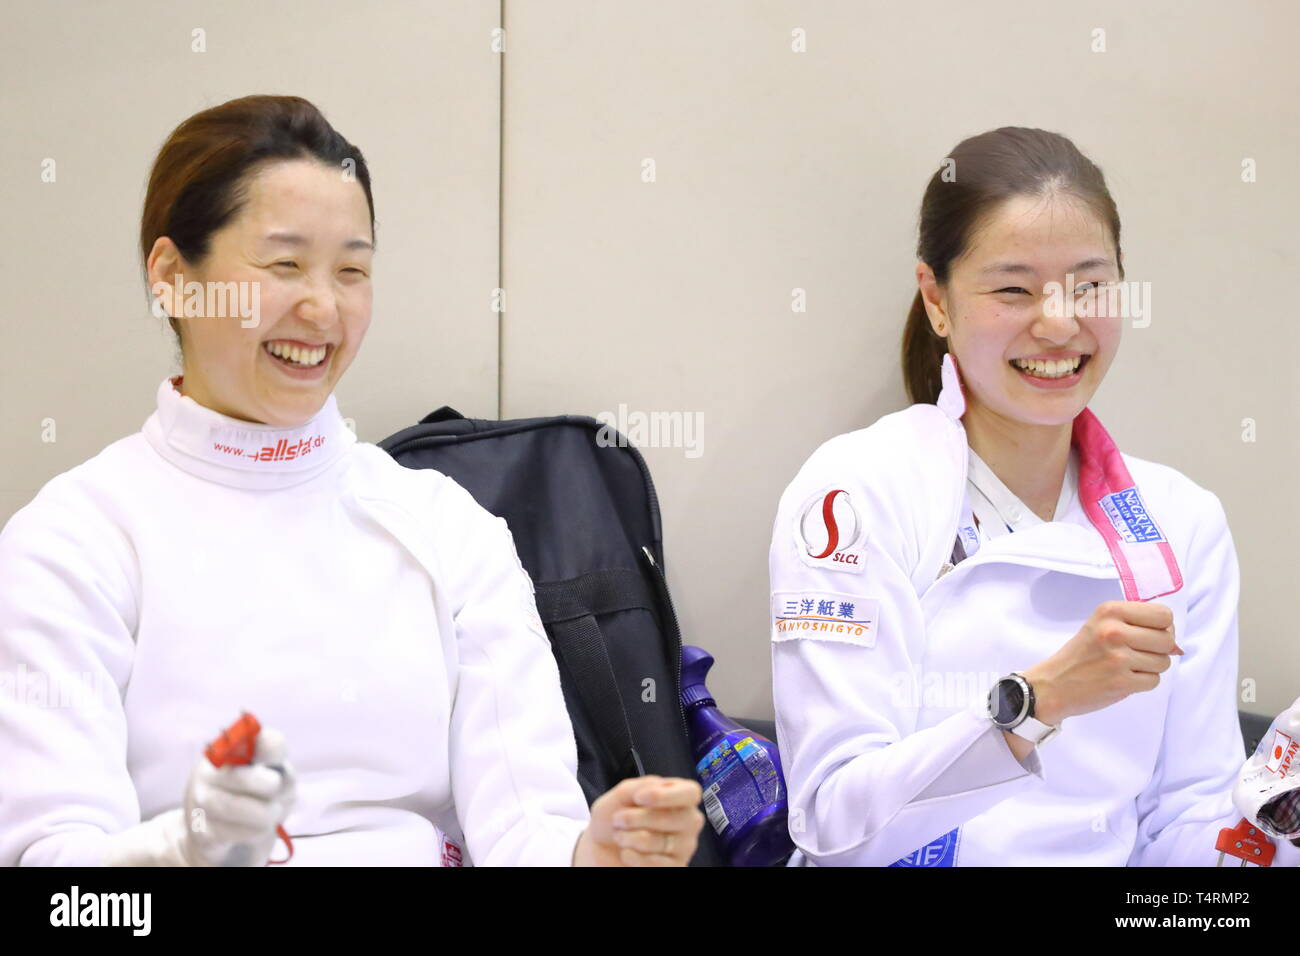 Ajinomoto National Training Center, Tokyo, Japan. 19th Apr, 2019. (L-R) Nozomi Sato, Ayumu Saito (JPN), APRIL 19, 2019 - Fencing : Japan National Team Training Session at Ajinomoto National Training Center, Tokyo, Japan. Credit: Naoki Nishimura/AFLO SPORT/Alamy Live News Stock Photo